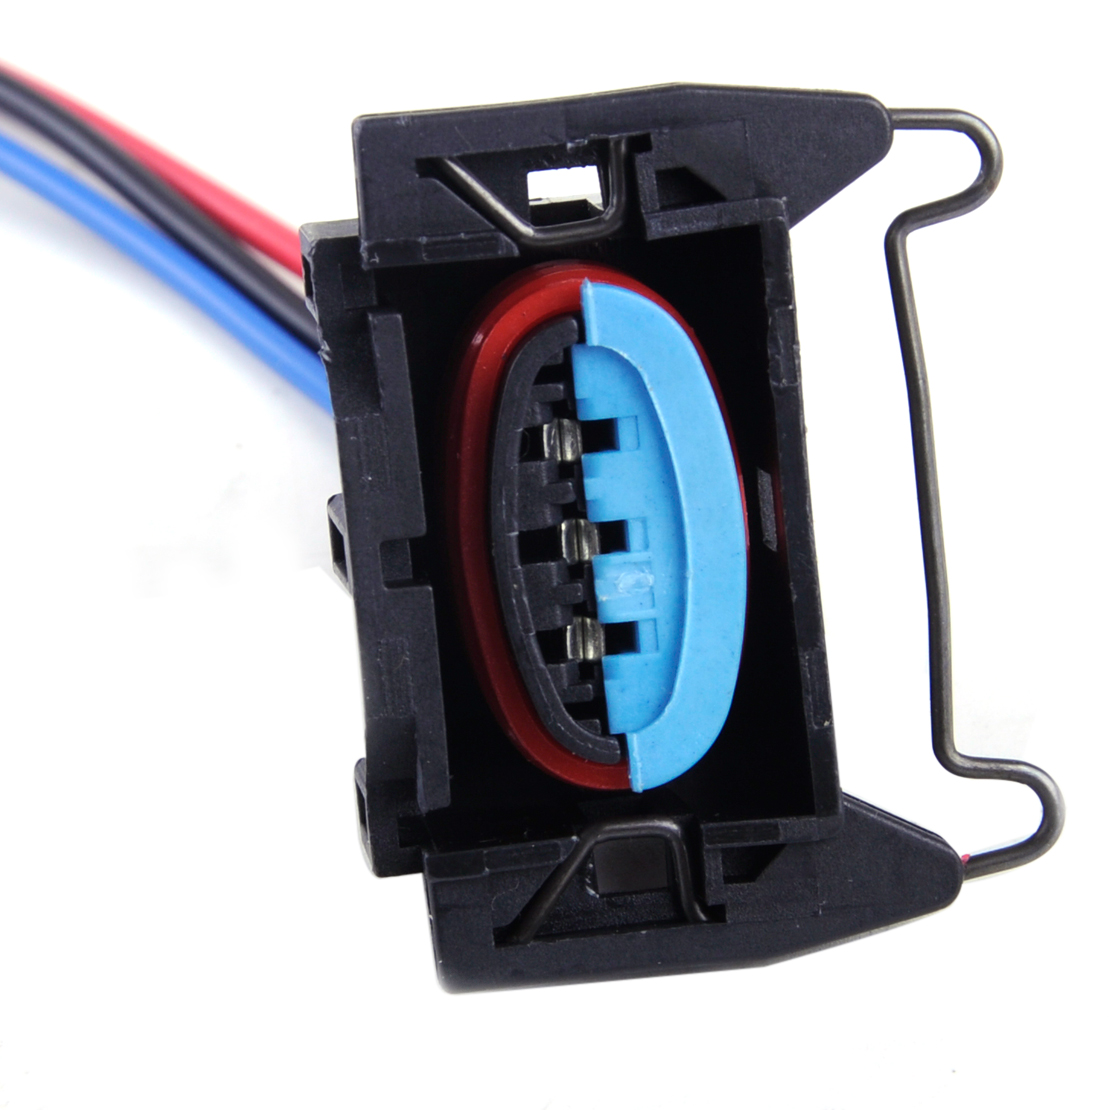 hight resolution of dwcx ignition coil pack wiring harness connector fit for ford mazda mercury 645 302 3u2z14s411tna 1p1727 57 5508 in ignition coil from automobiles